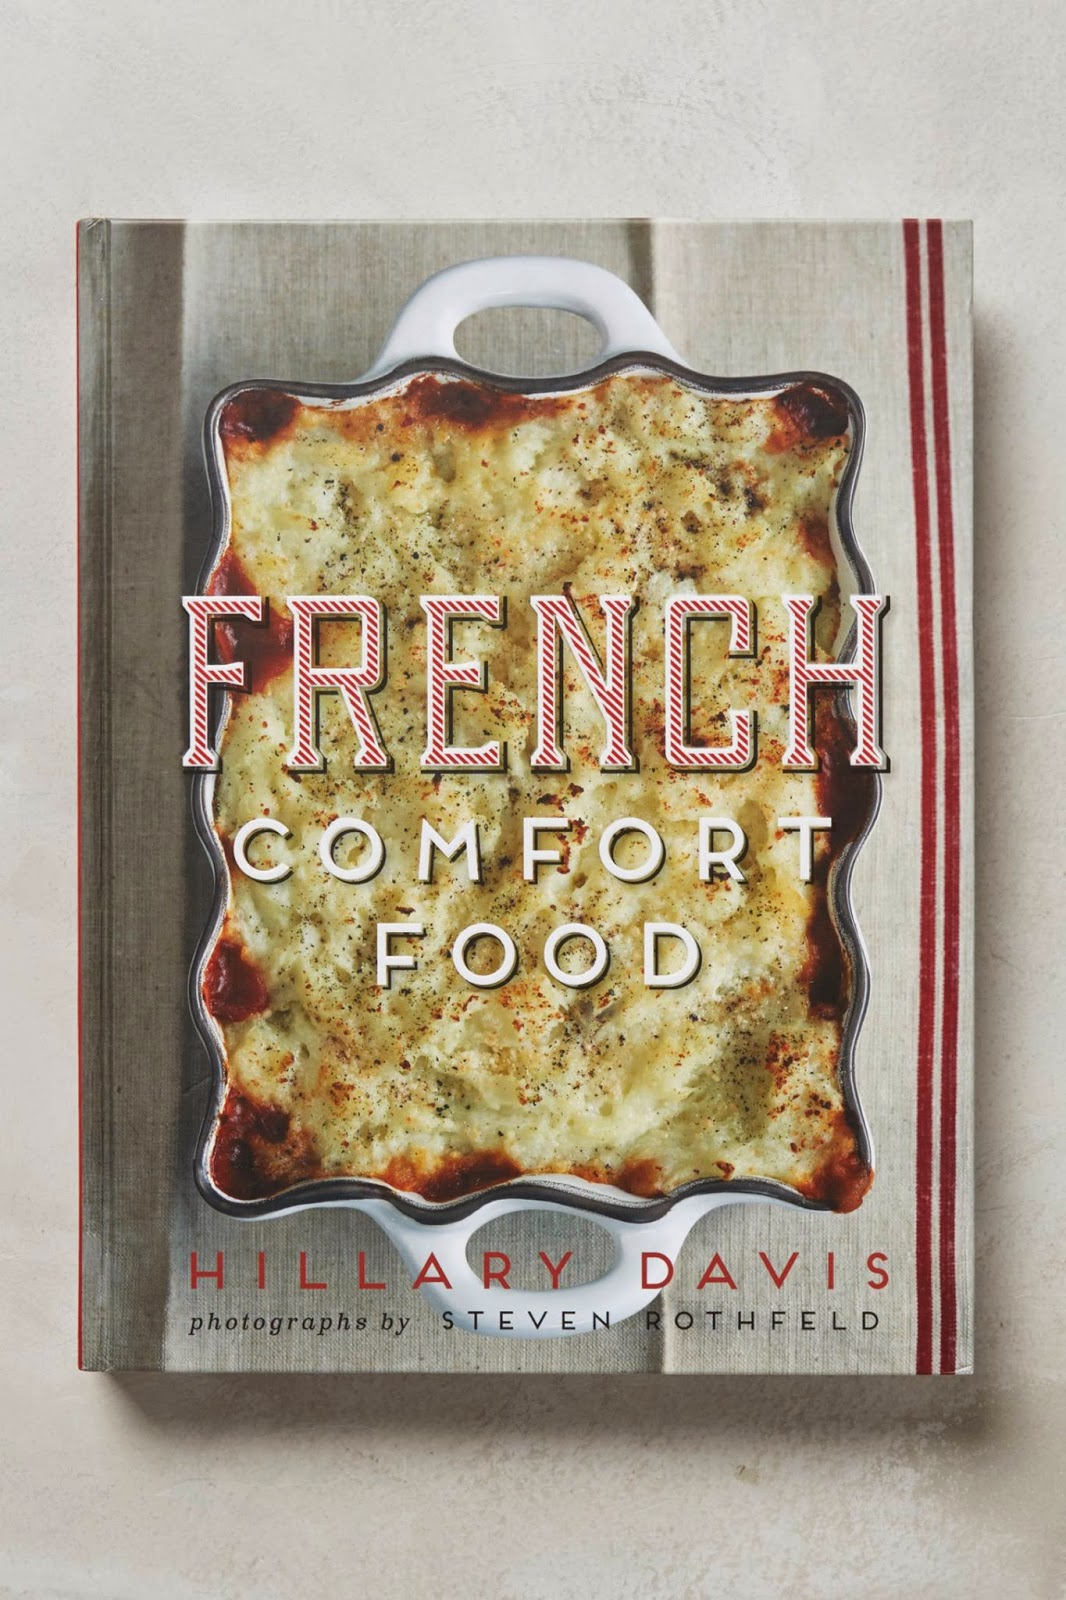 http://www.amazon.com/French-Comfort-Food-Hillary-Davis/dp/1423636988/ref=sr_1_1?s=books&ie=UTF8&qid=1417606014&sr=1-1&keywords=french+comfort+food